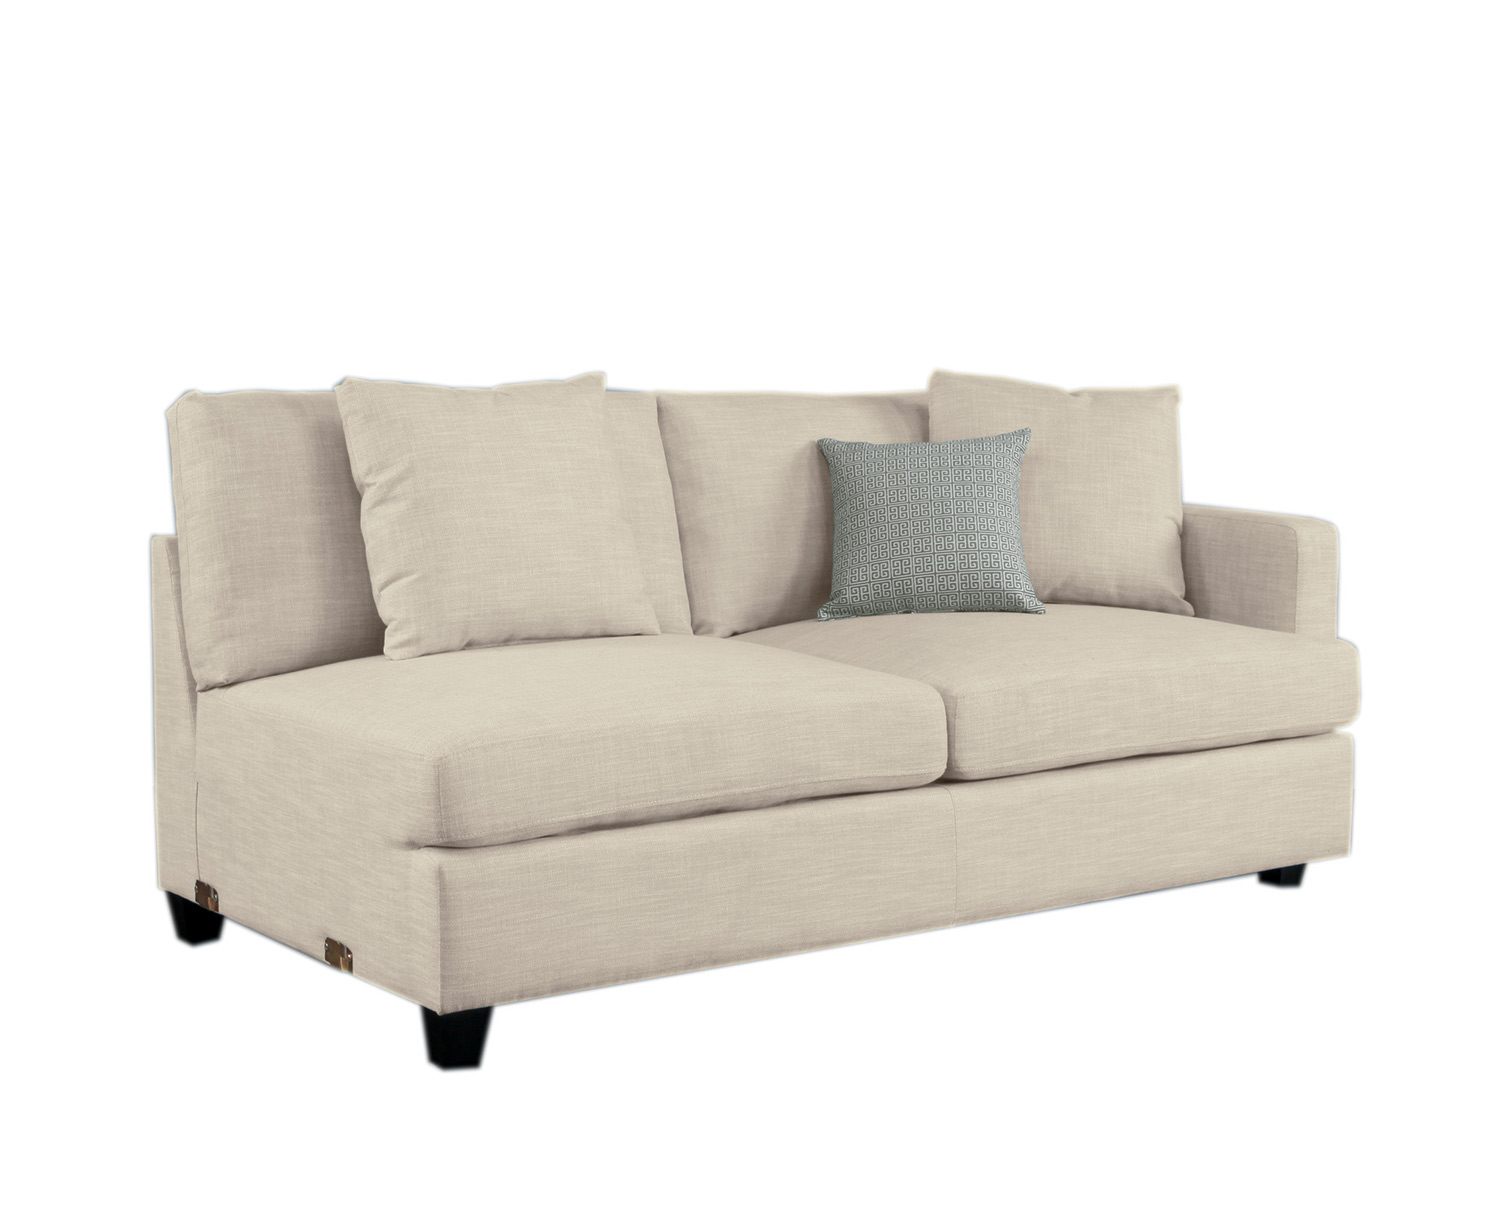 Homelegance Southgate Right Side 2-Seater - Ivory